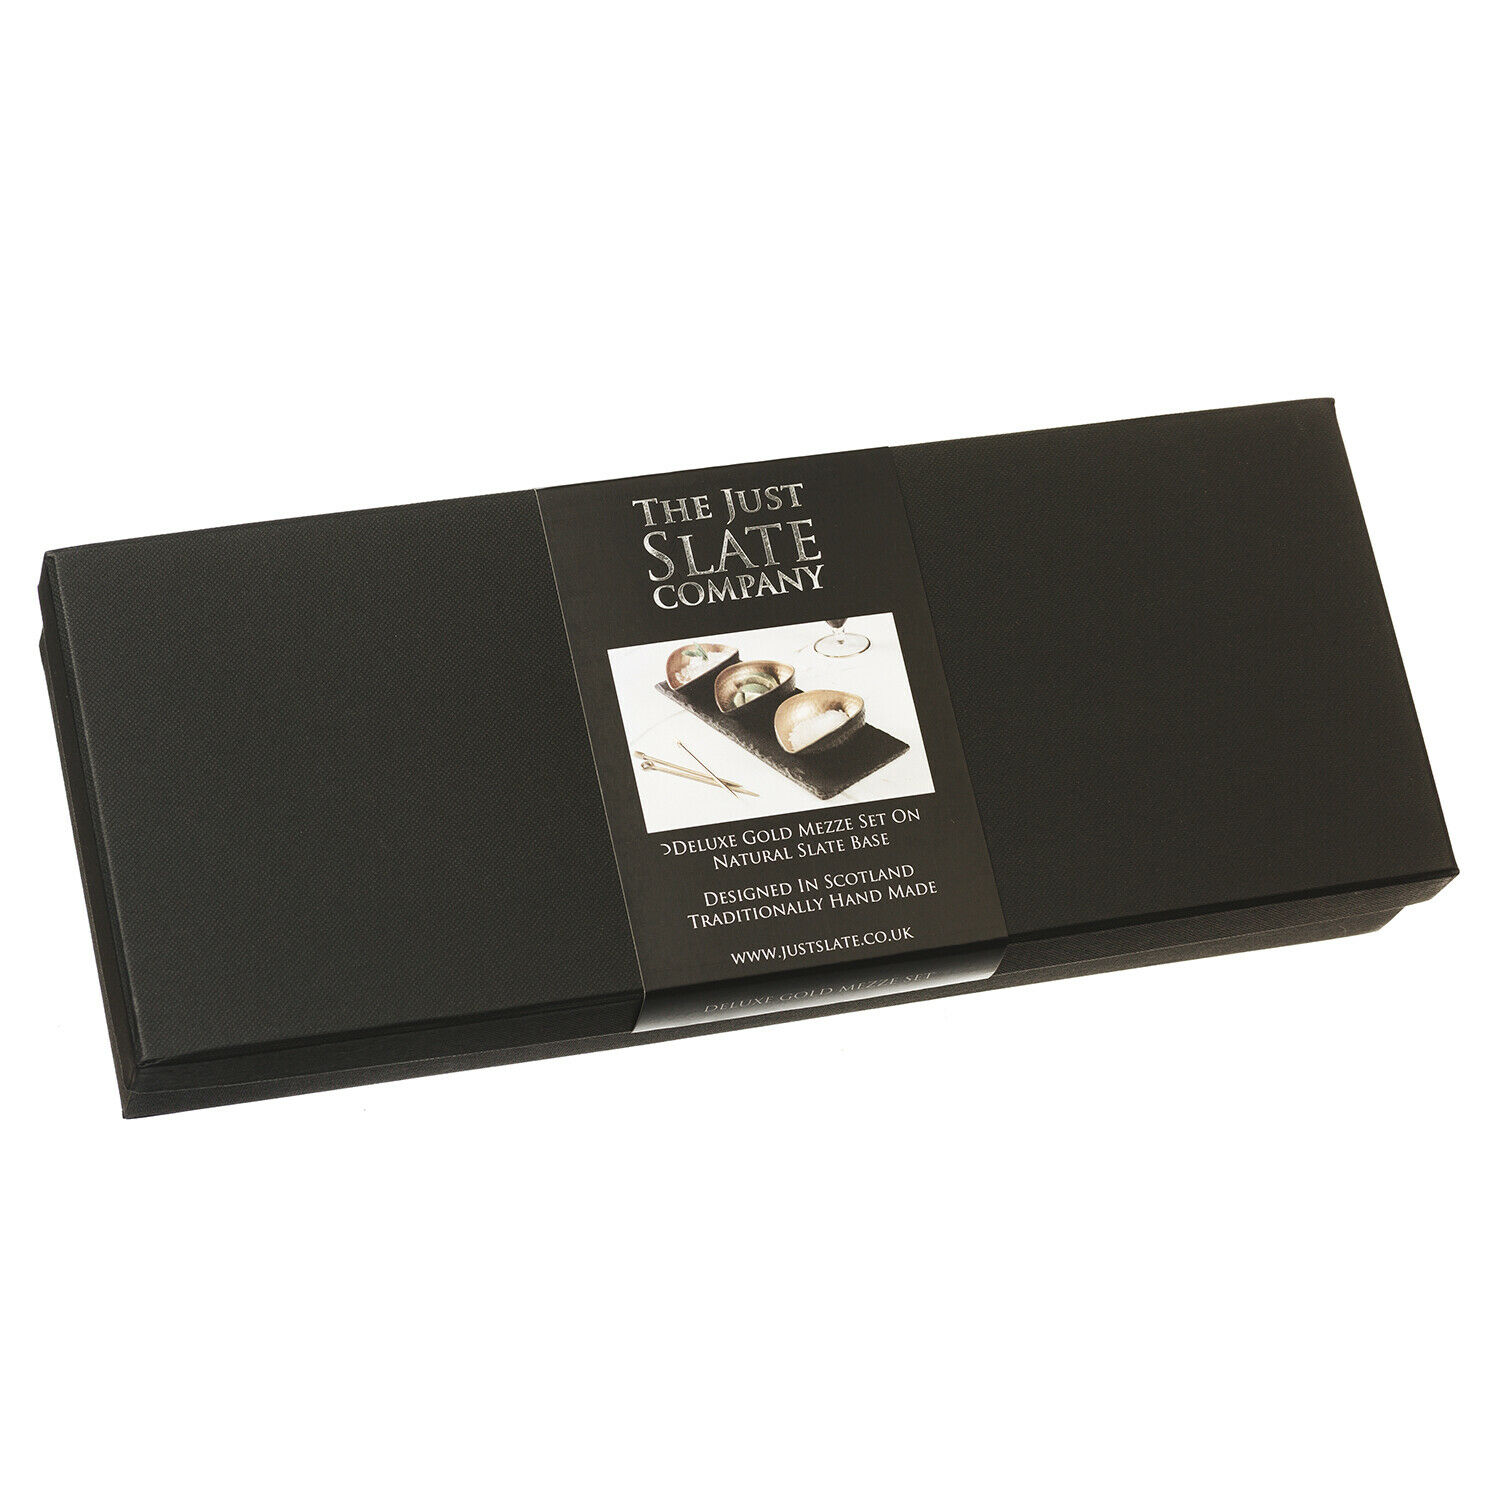 The Just Slate Company – Deluxe Gold Mezze Set in Gift Box